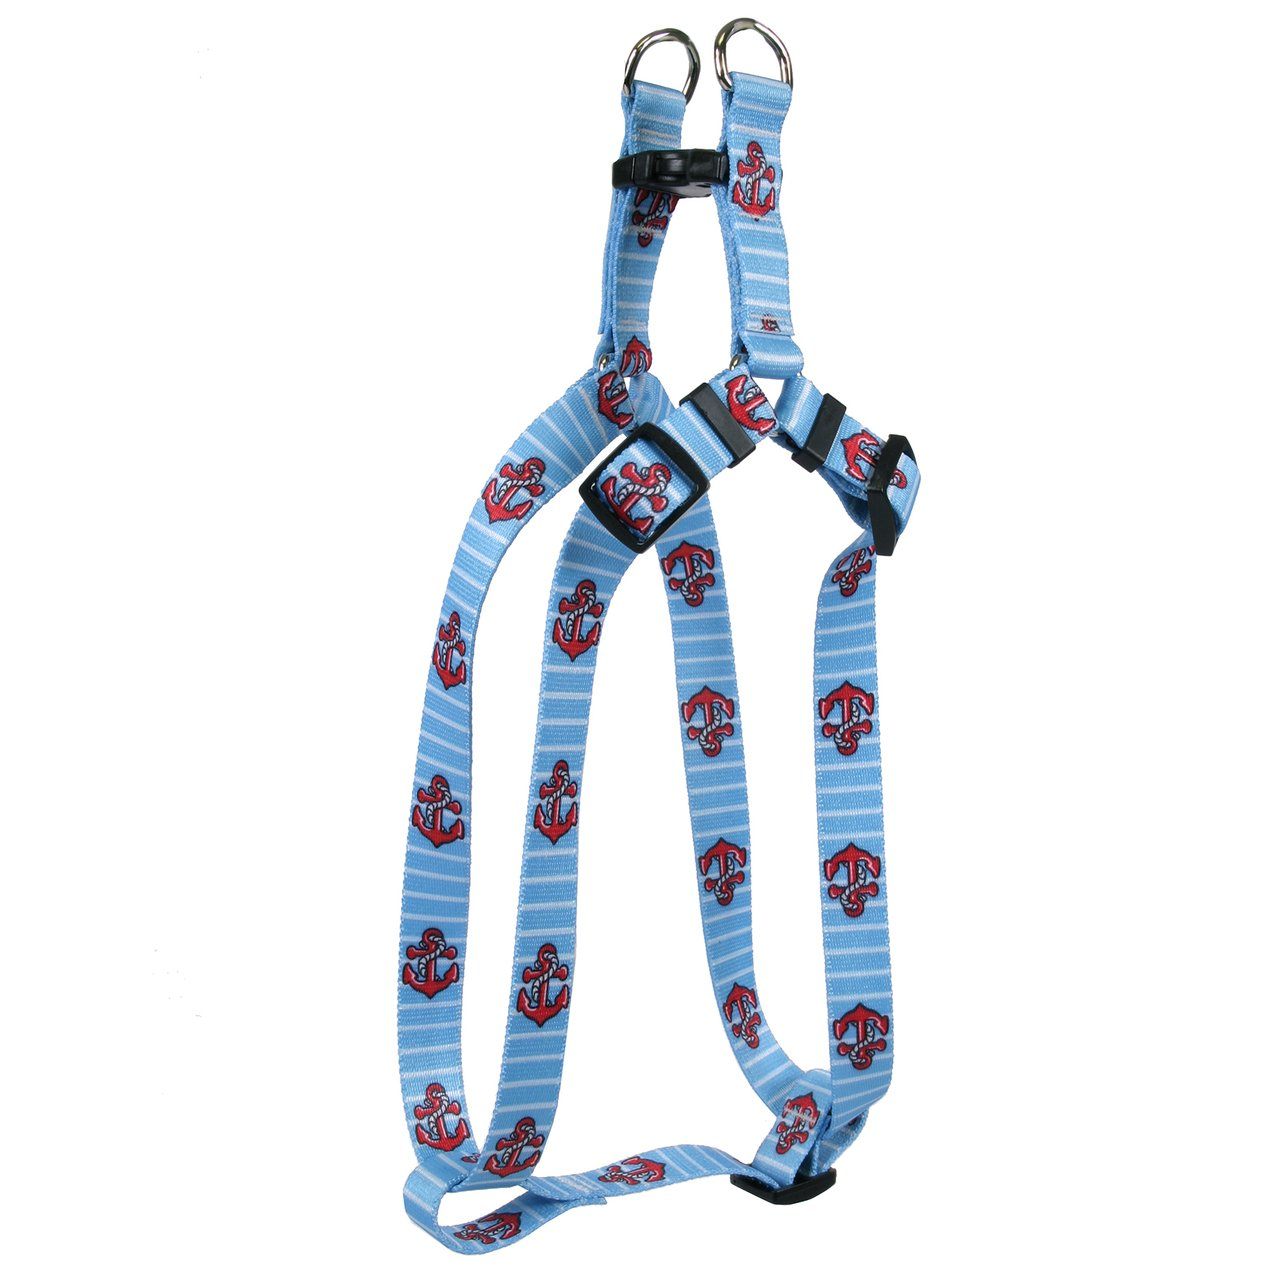 Large 25\ Yellow Dog Design Anchors On bluee Stripes Step-in Dog Harness 1  Wide and Fits Chest of 25 to 40 , Large